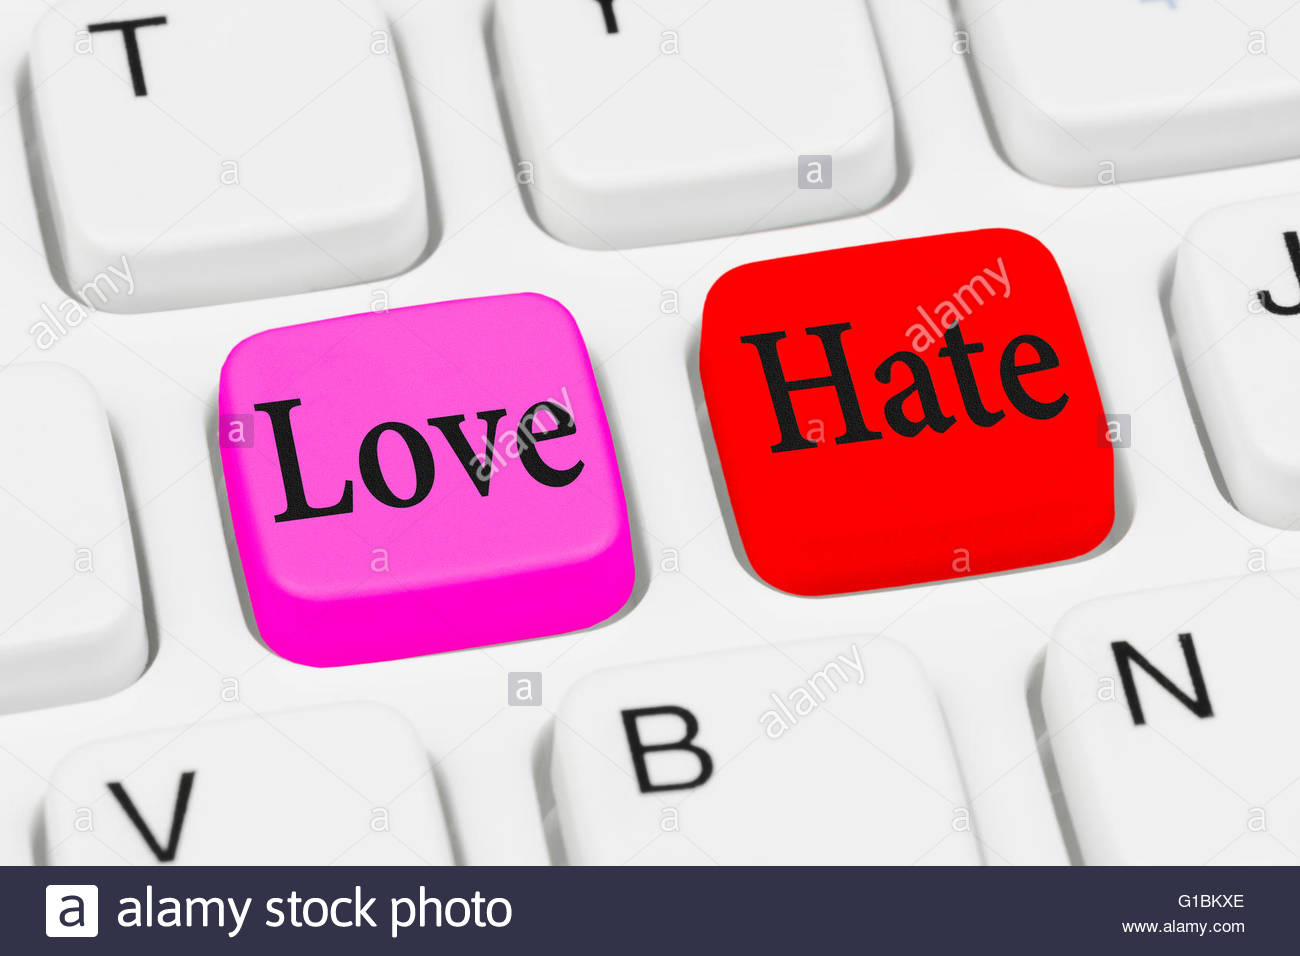 Love or Hate buttons on a computer keyboard. - Stock Image